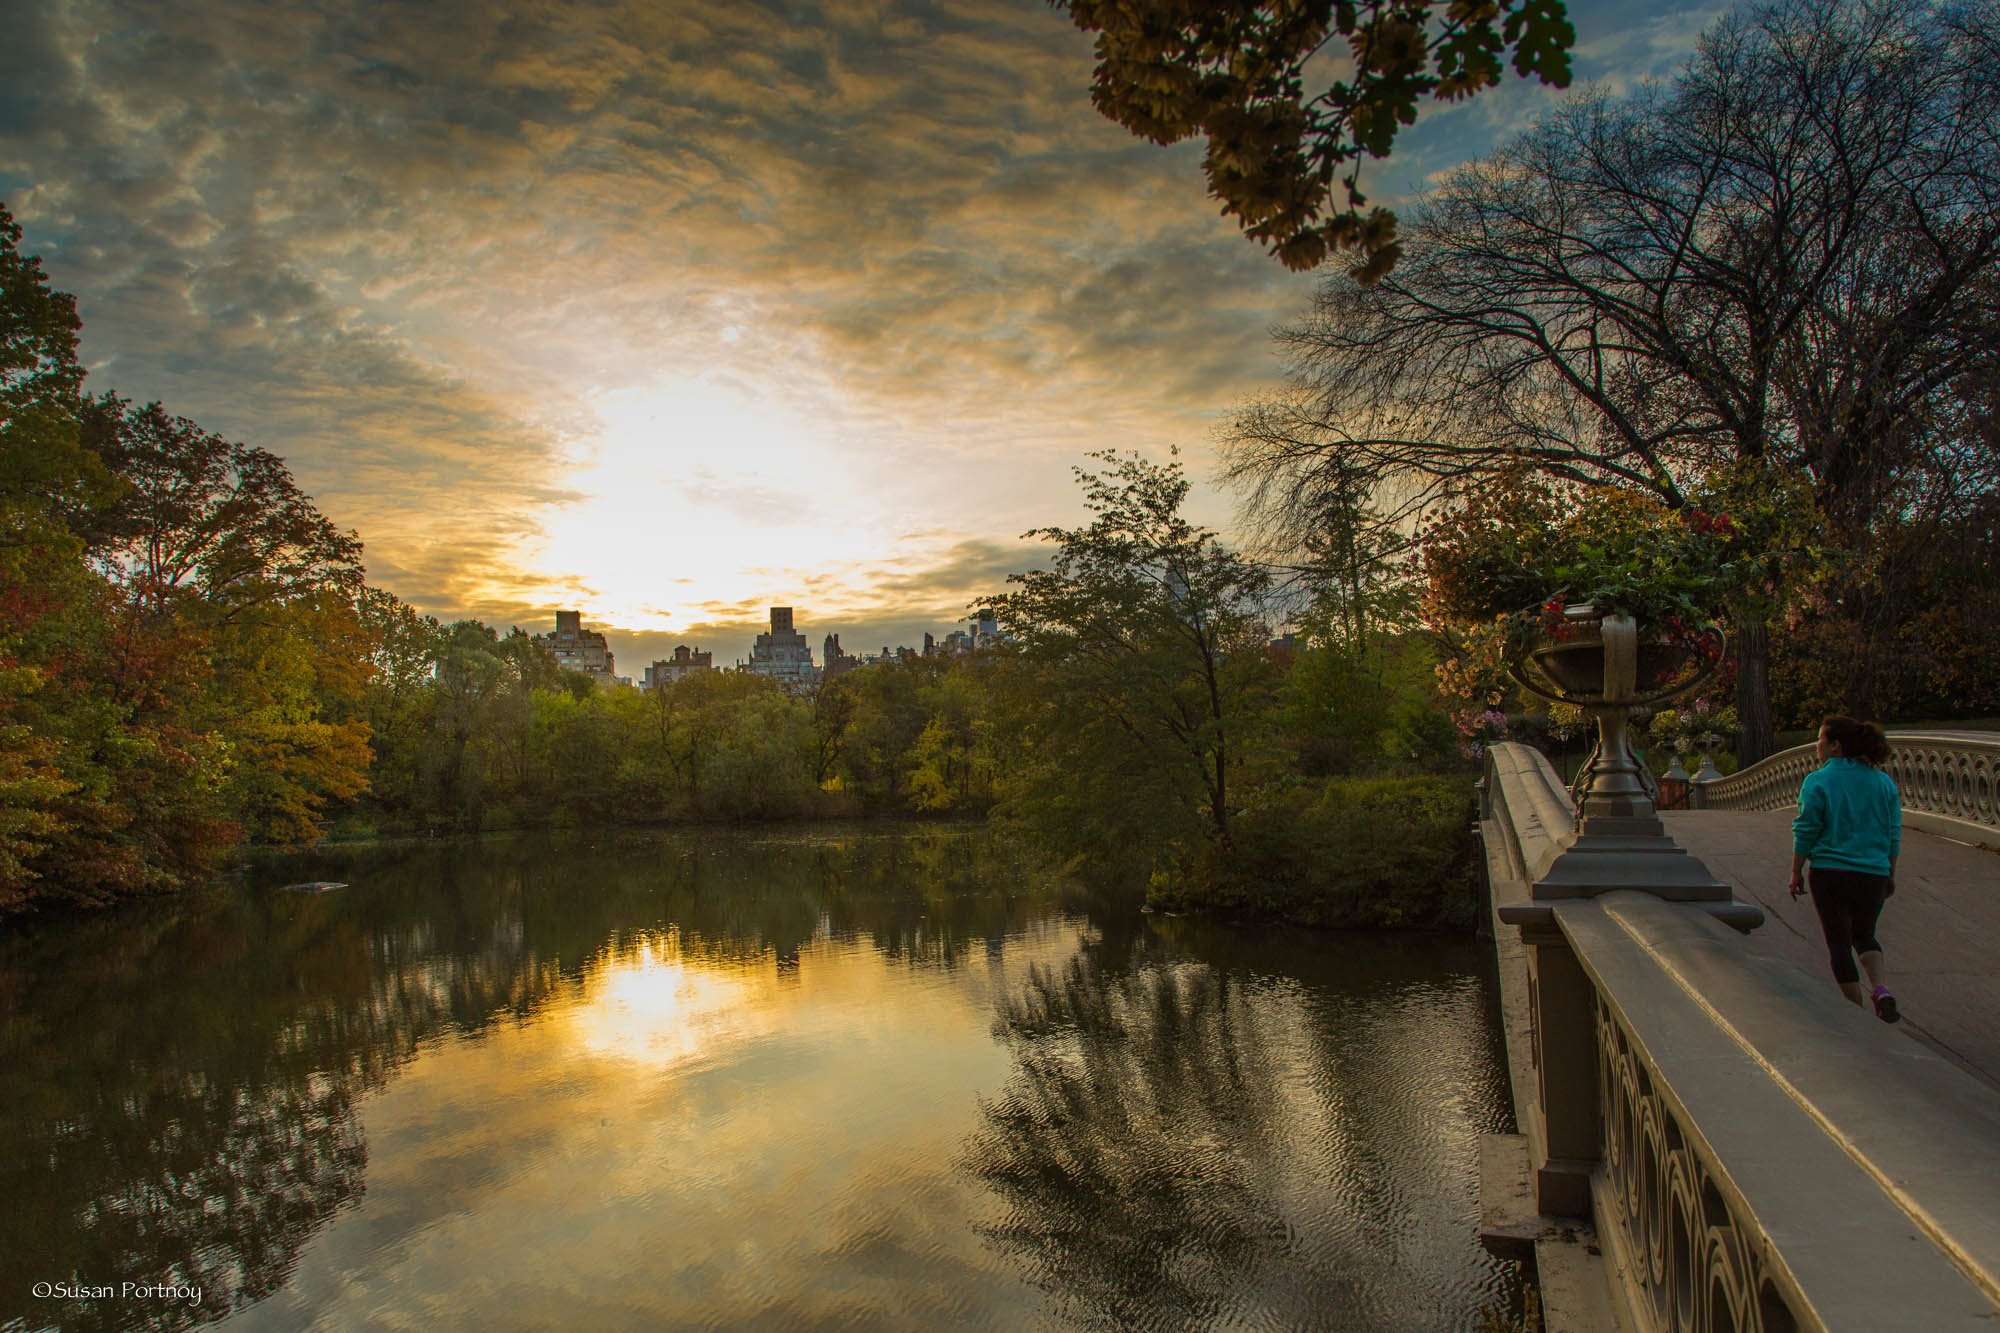 A view of the Ramble from the north side of Bow Bridge, Central Park, NYC